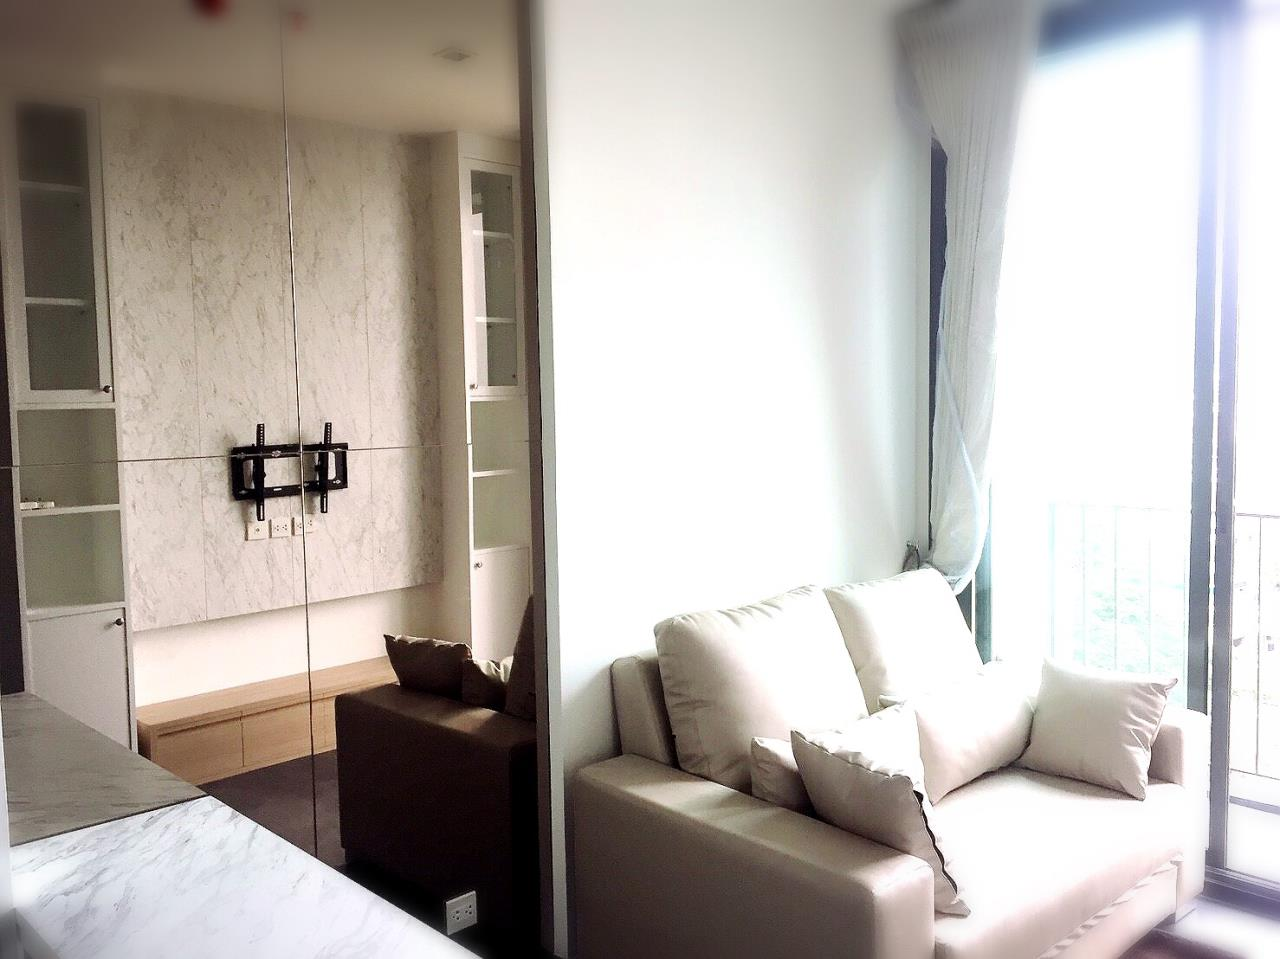 Century21 Skylux Agency's Edge Sukhumvit 23 / Condo For Rent / 1 Bedroom / 33 SQM / BTS Asok / Bangkok 1